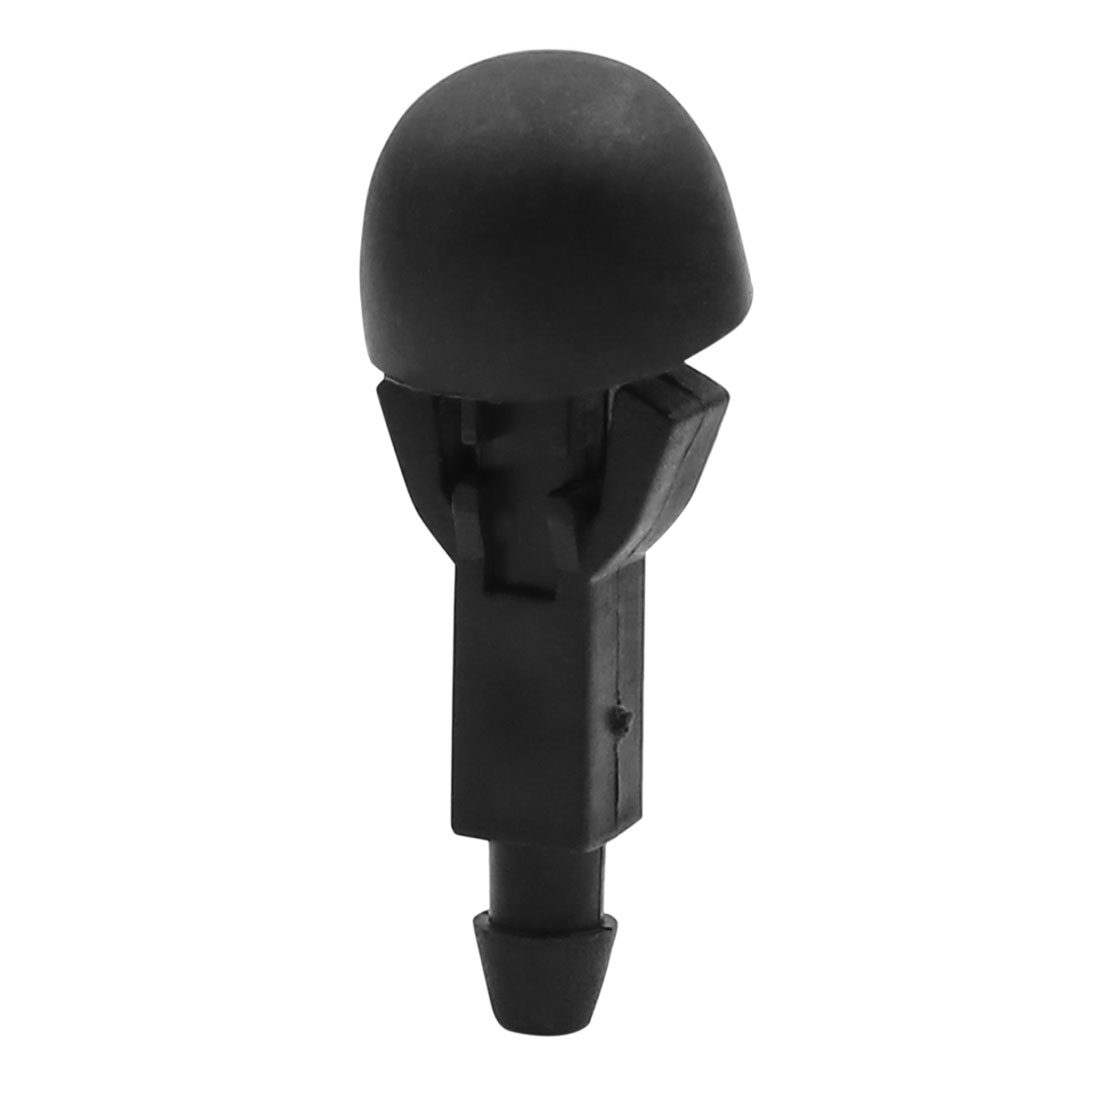 Universal Black Windshield Washer Nozzle Cleaning Sprayer for Car 45 x 17mm 3pcs - image 2 of 5